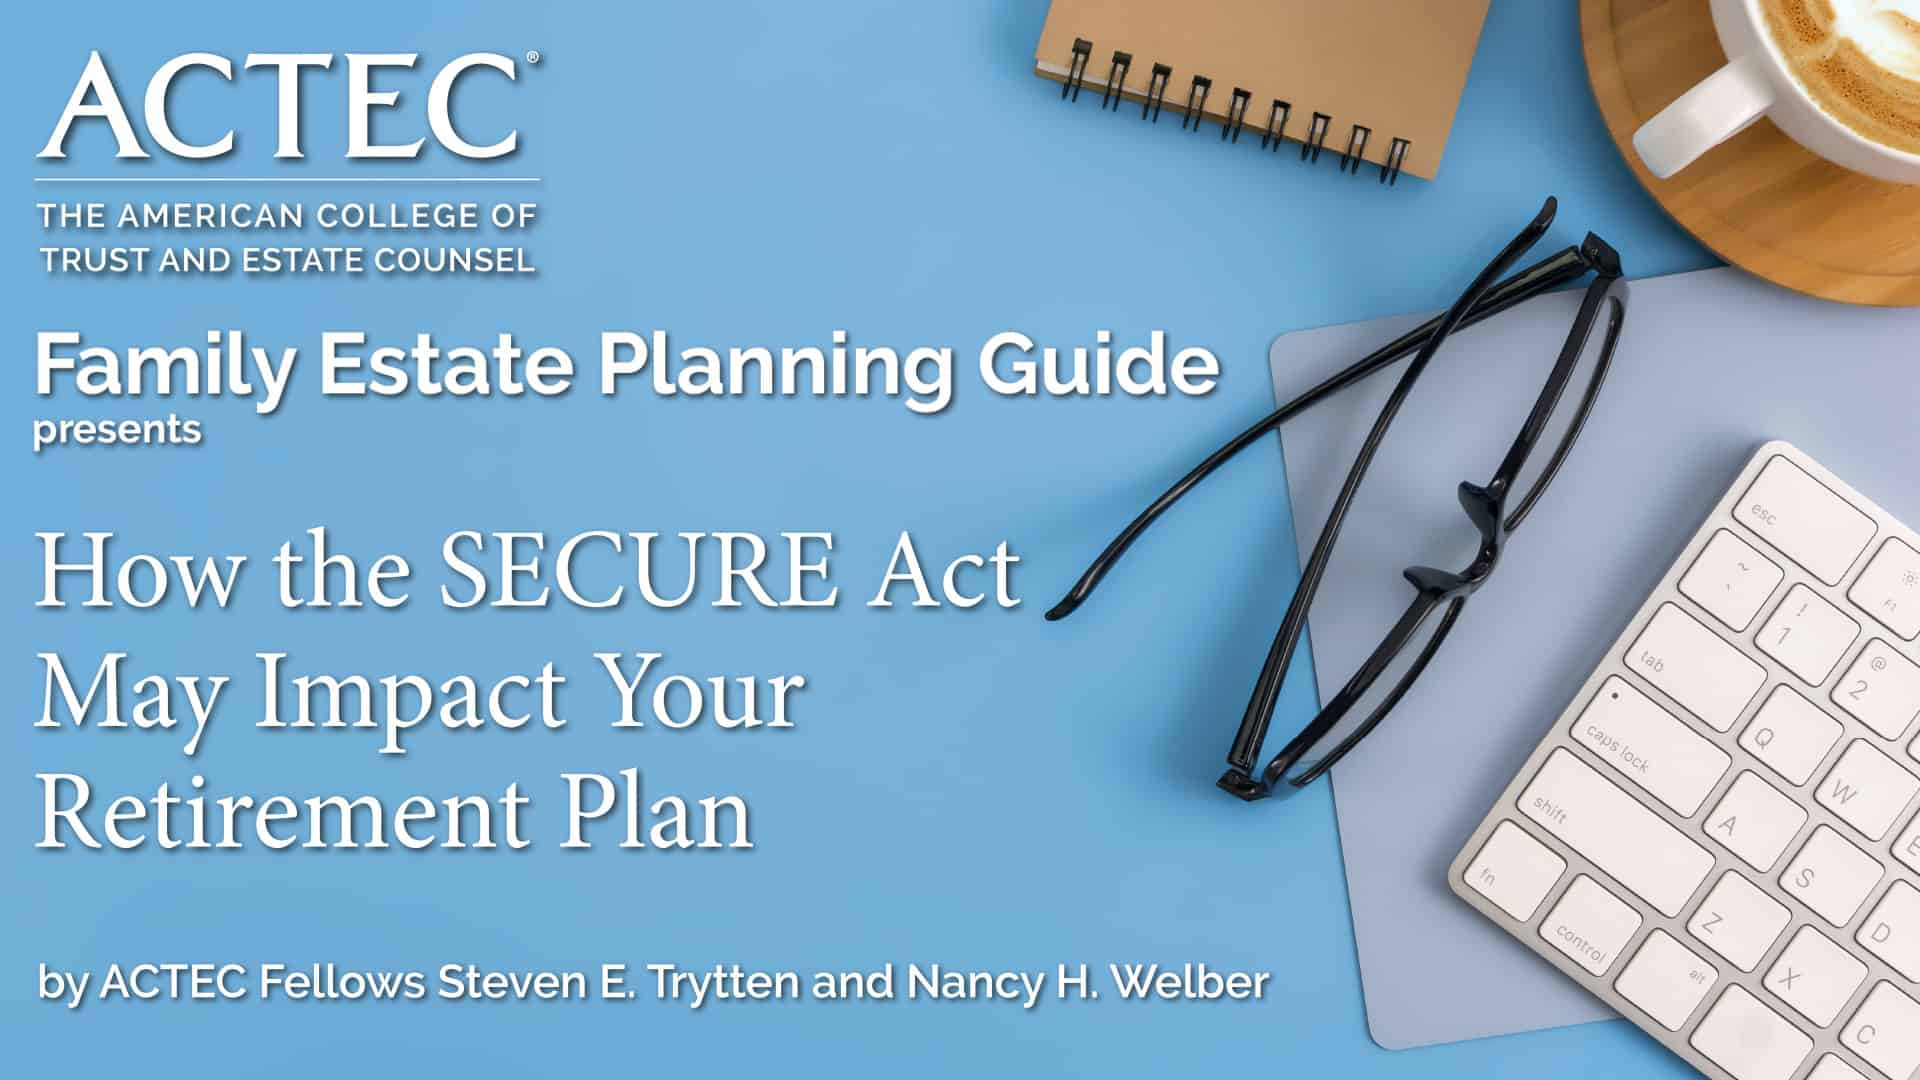 How the SECURE Act May Impact Your Retirement Plan